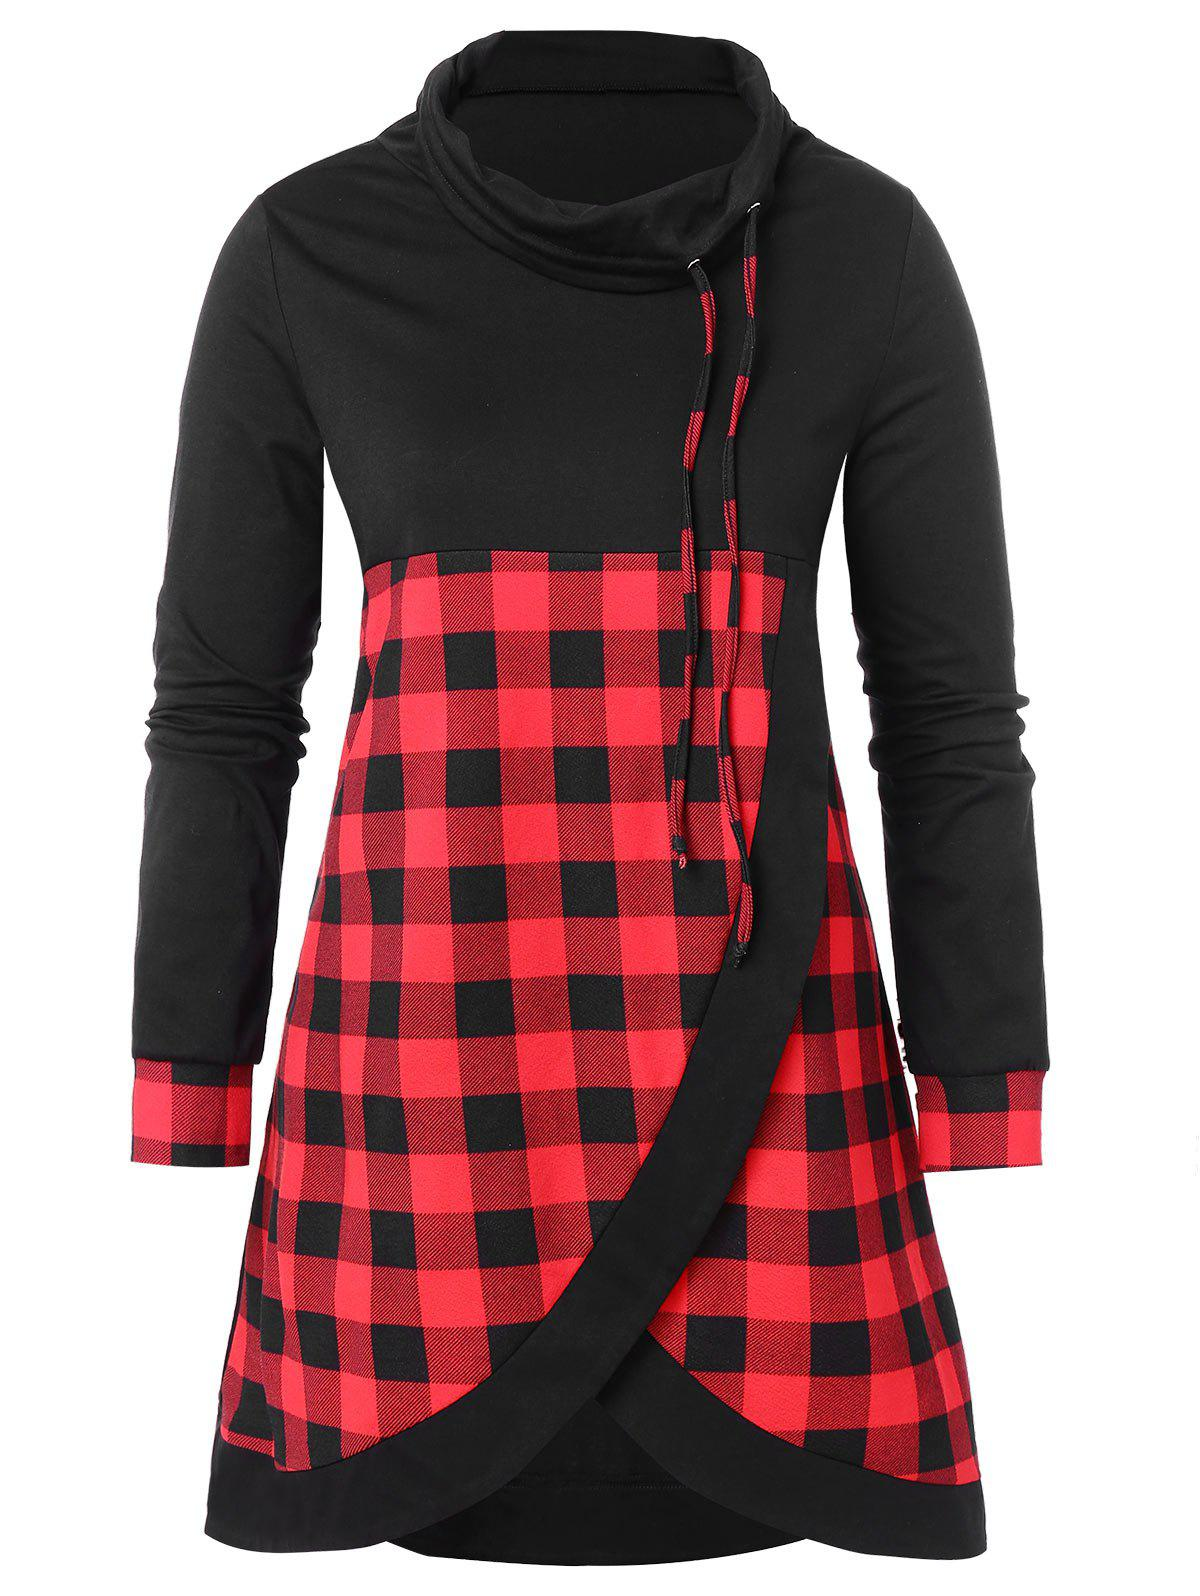 Buy Drawstring Plus Size Plaid Panel Sweatshirt